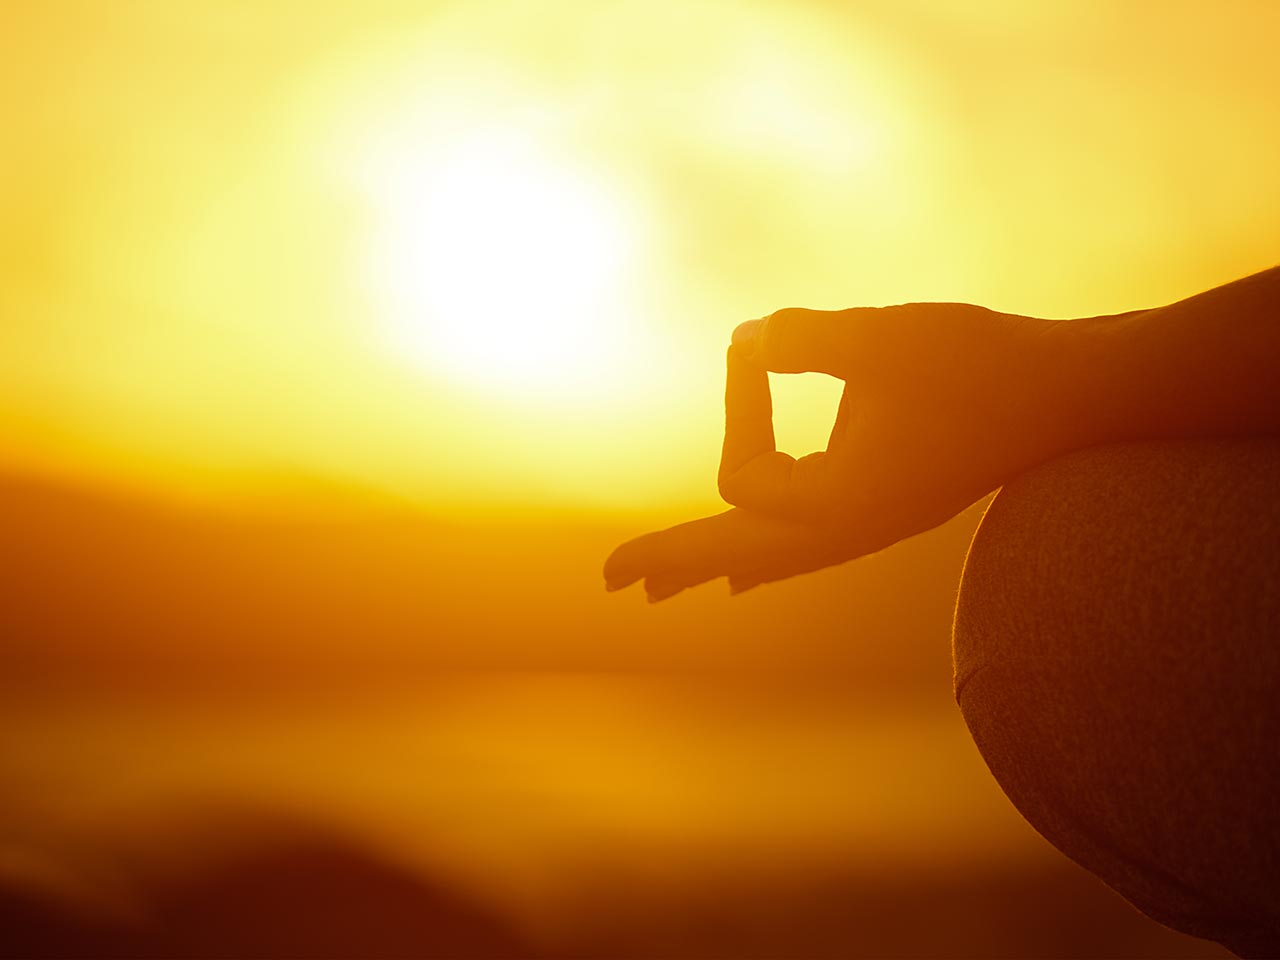 Silhouette of woman in yoga zen pose